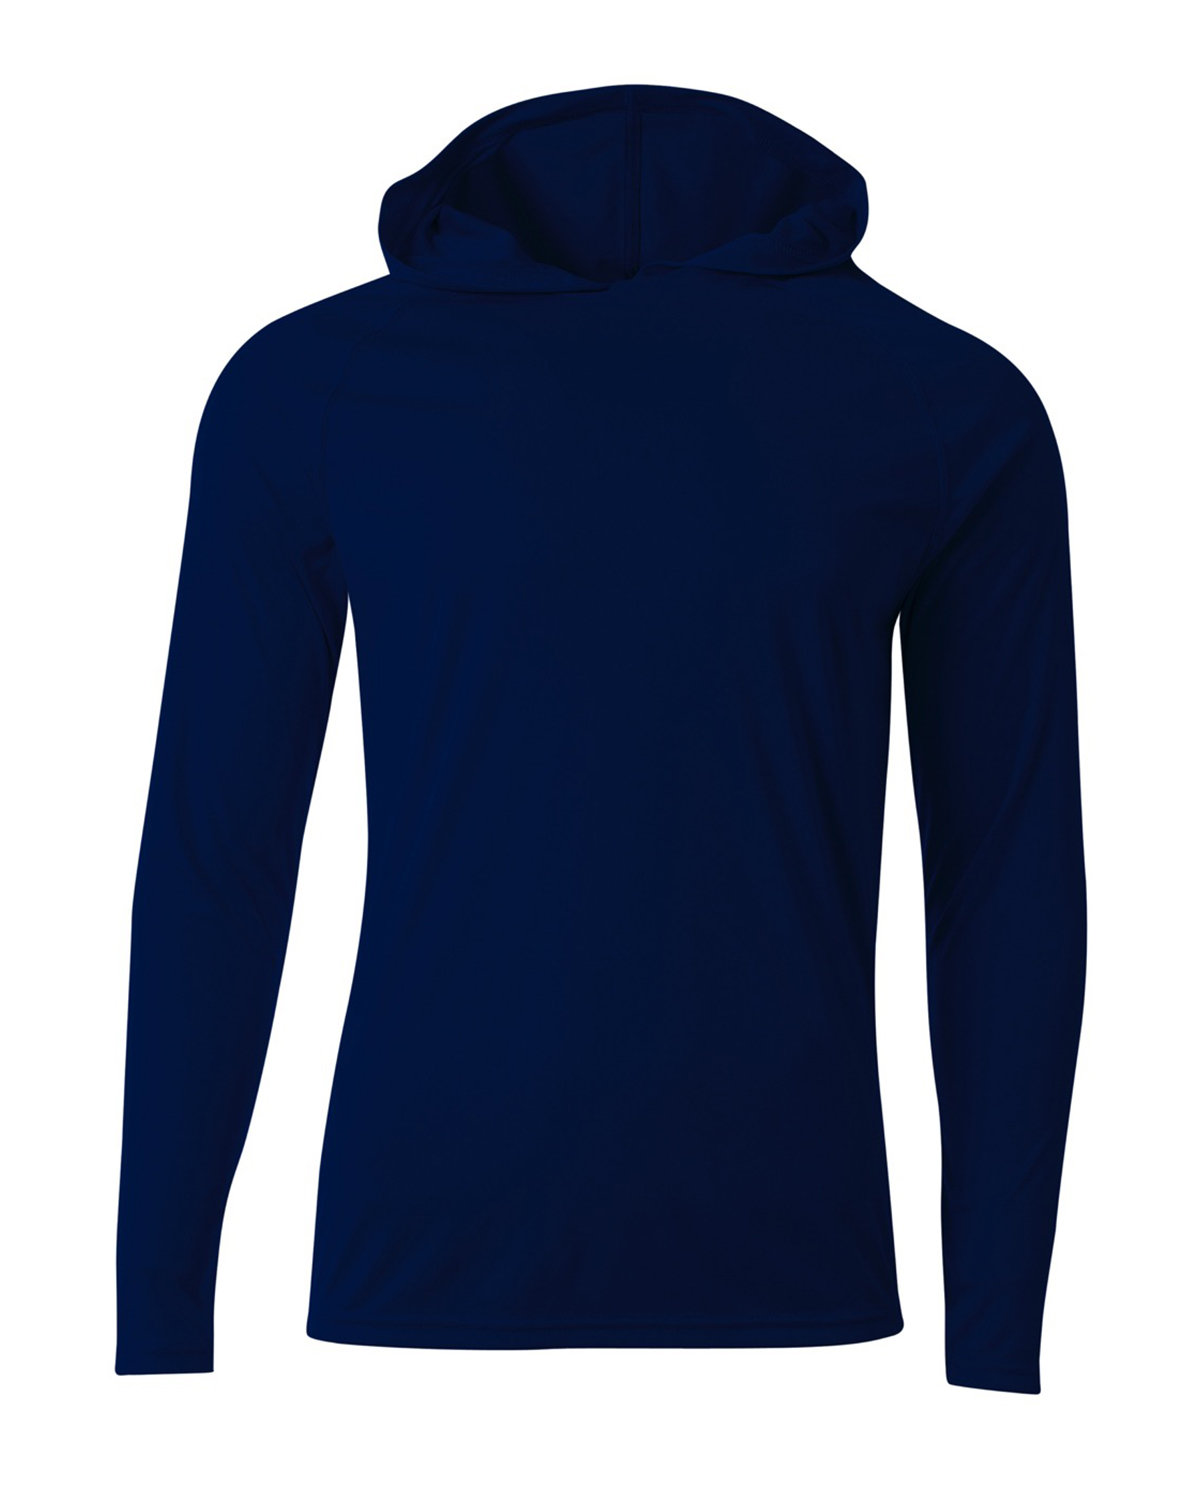 A4 Men's Cooling Performance Long-Sleeve Hooded T-shirt NAVY